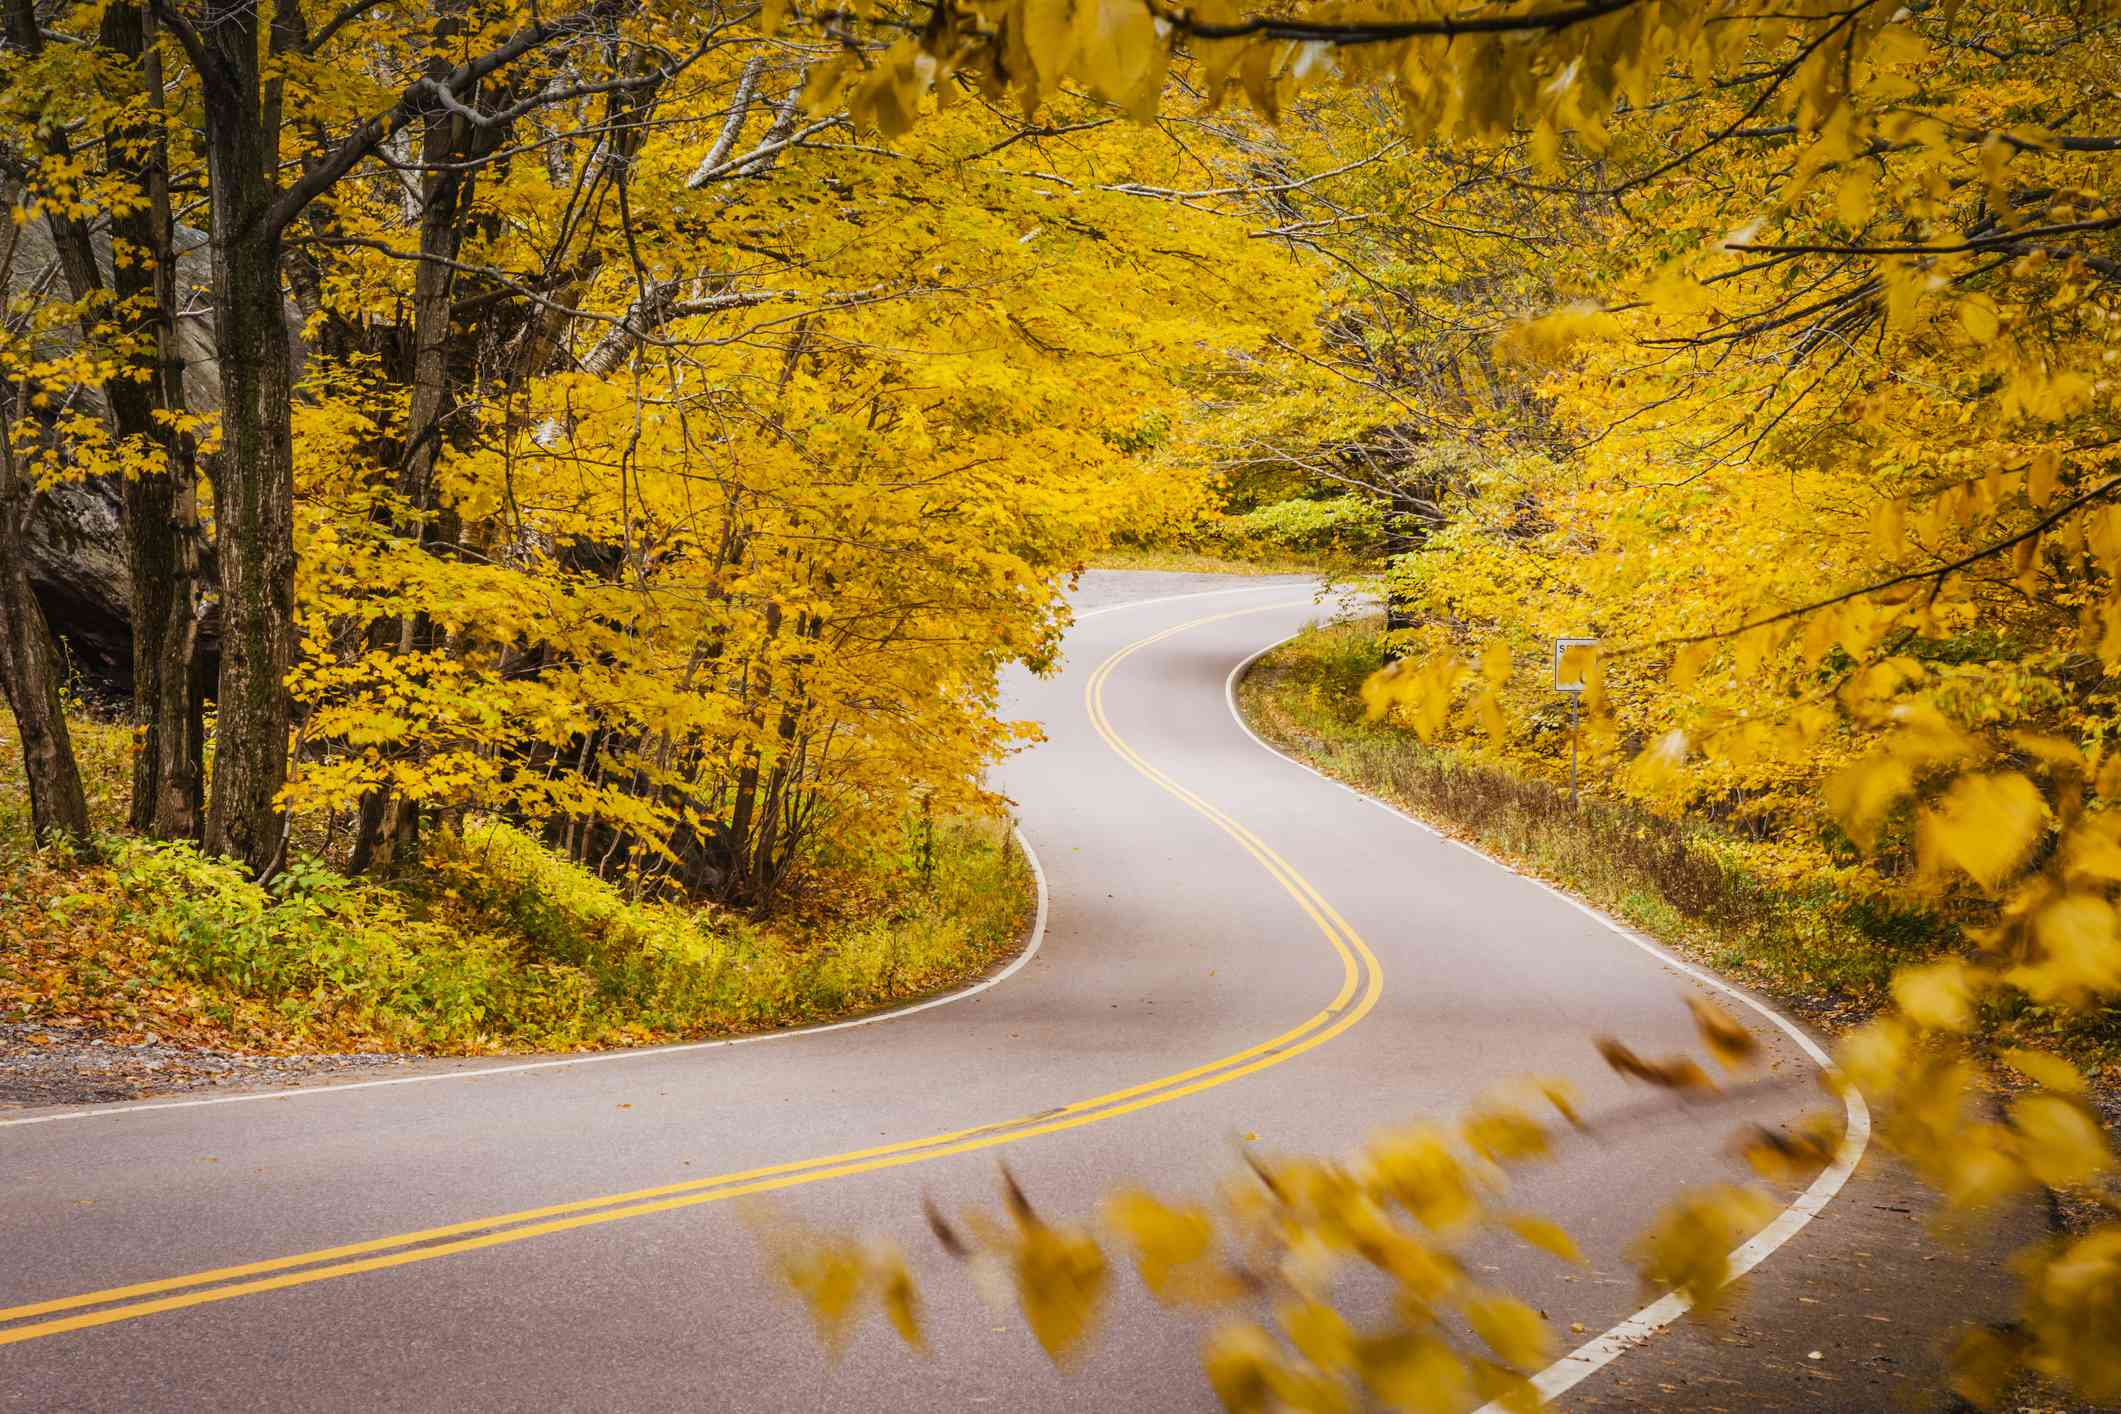 Curvy road in autumn near Smugglers Notch, Stowe, Vermont, USA